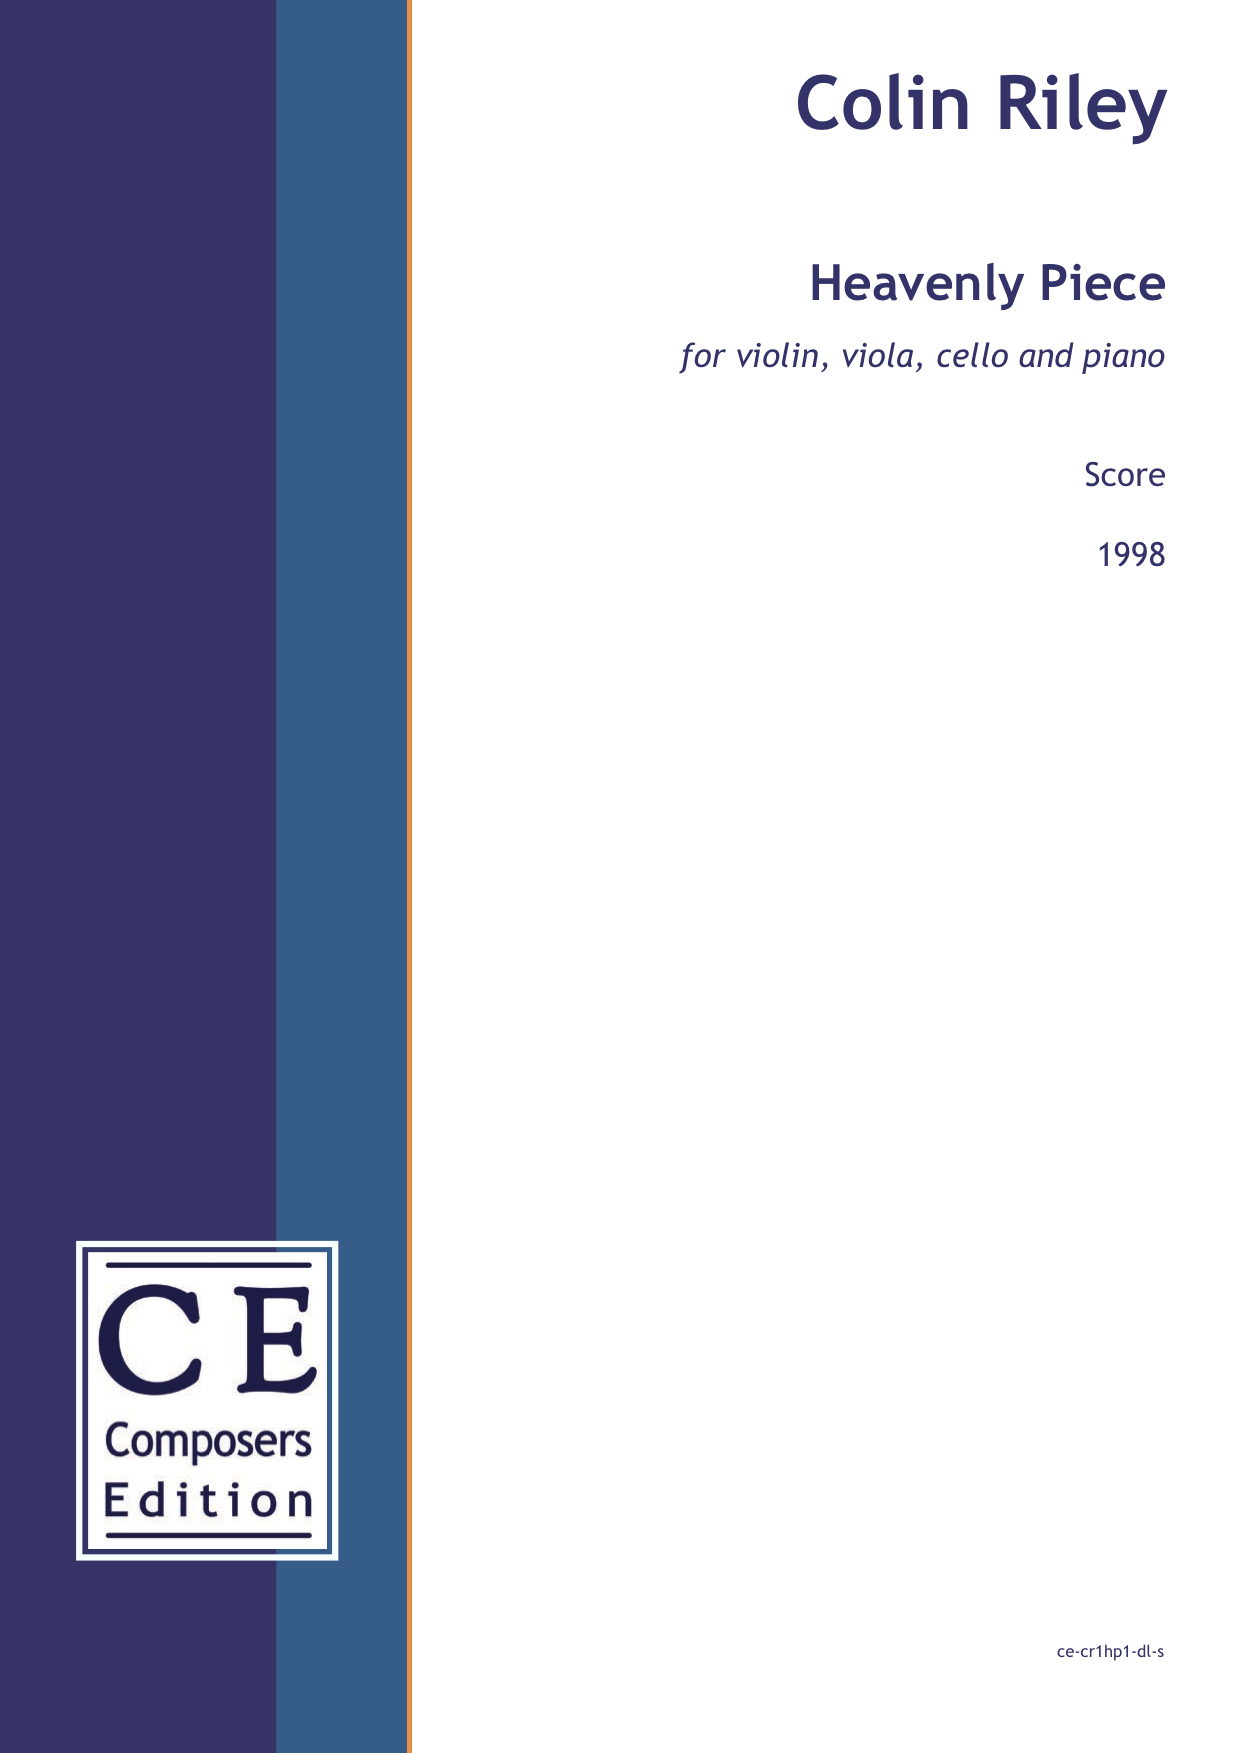 Colin Riley: Heavenly Piece for violin, viola, cello and piano